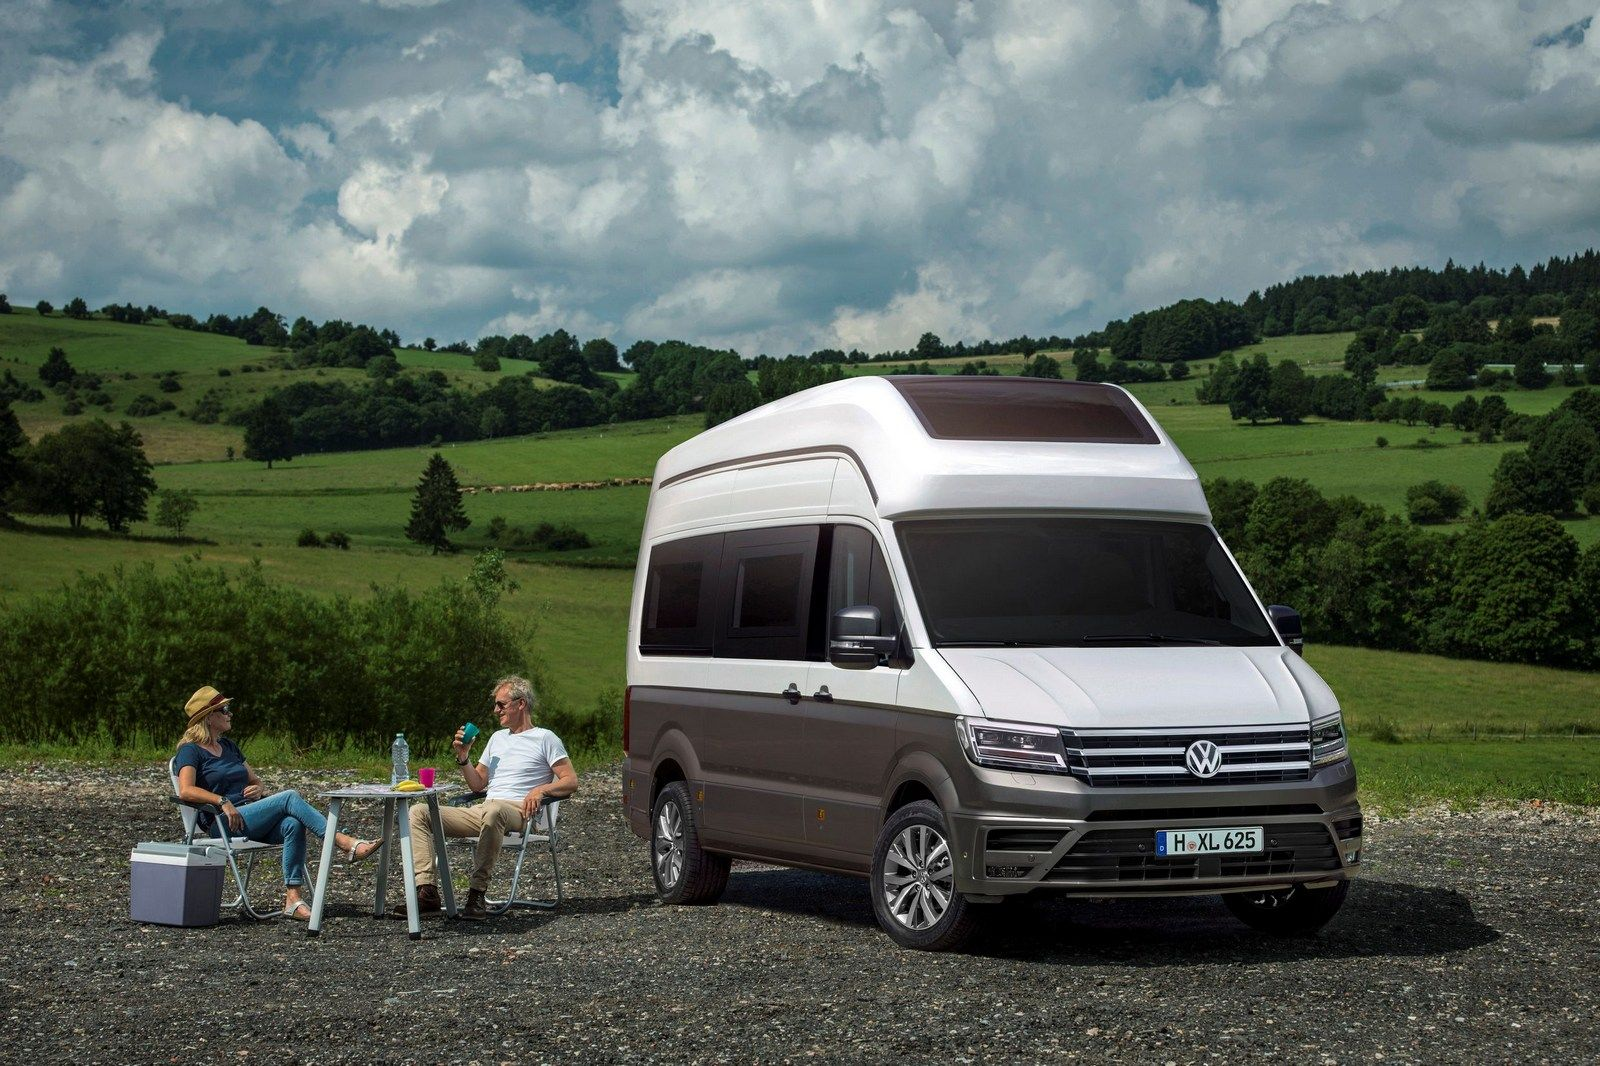 Vw california xxl concept previews a crafter based motorhome